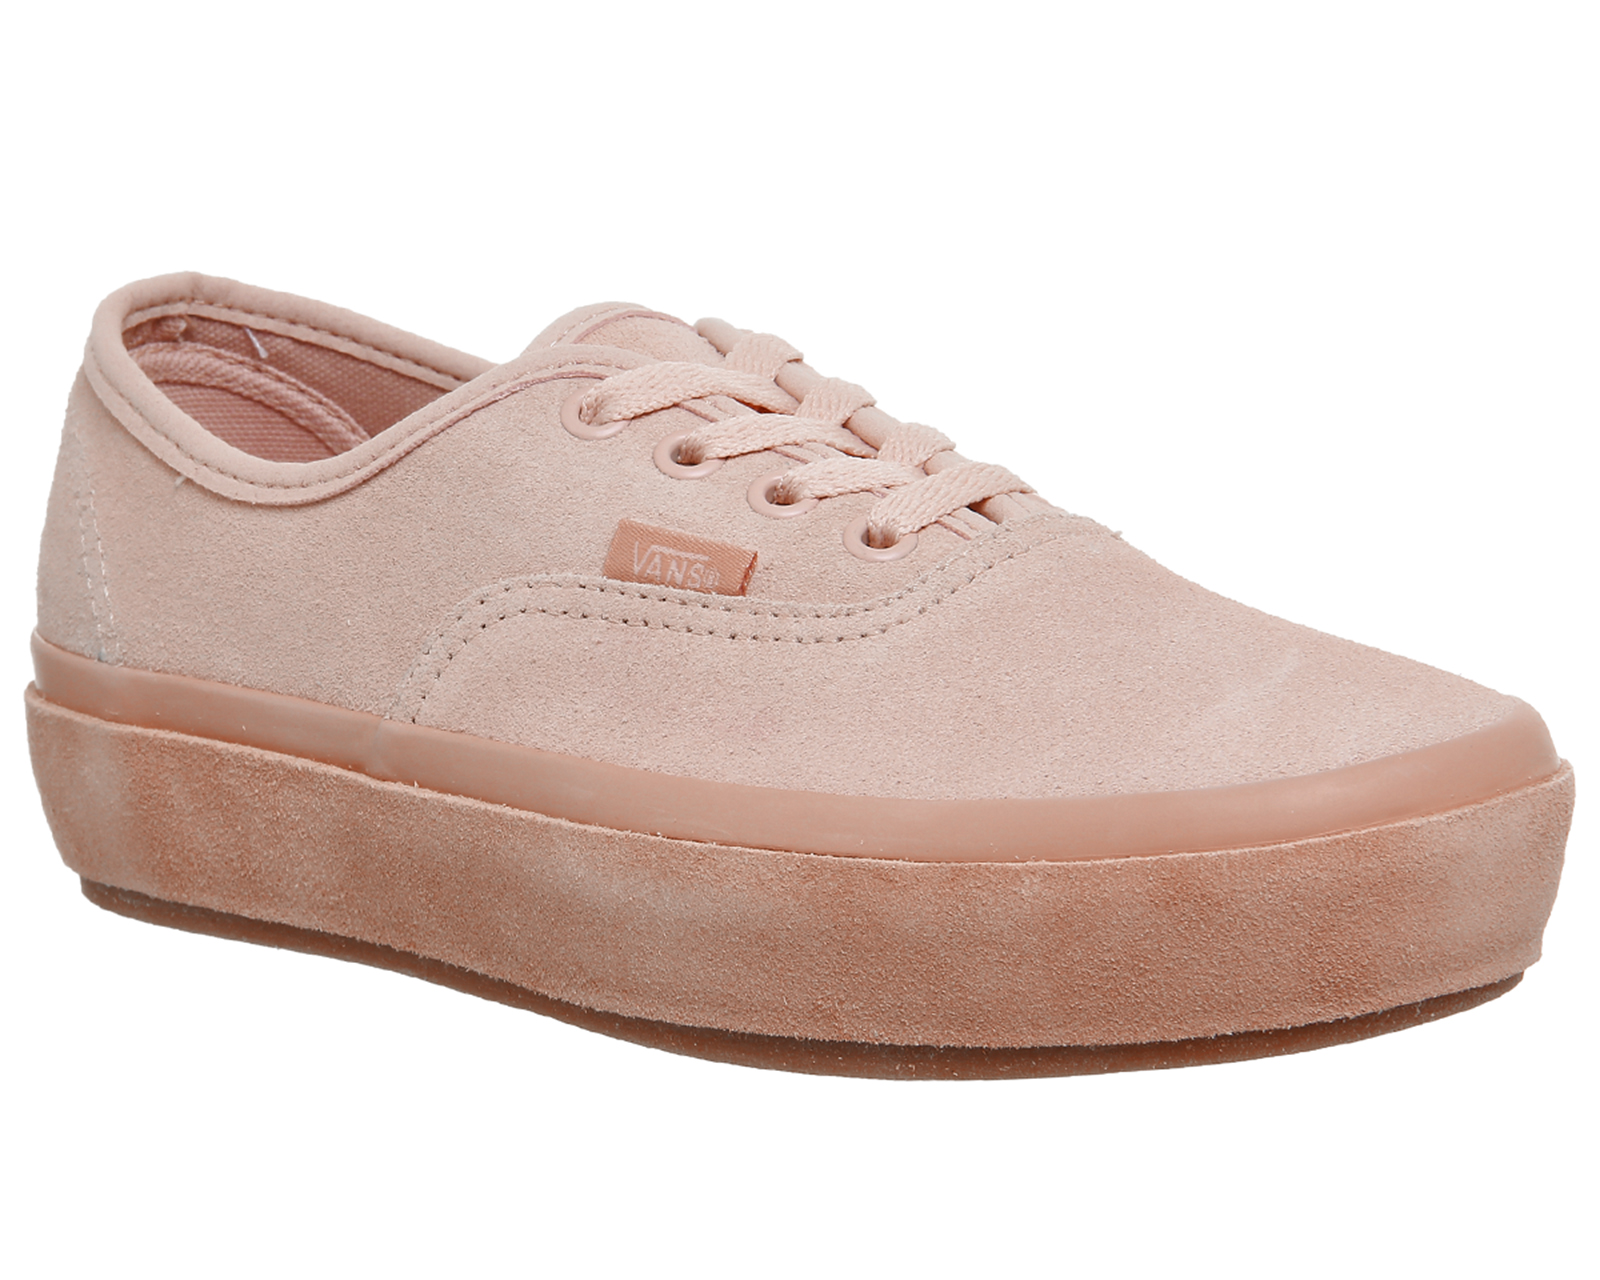 49bc310dc8094d Sentinel Womens Vans Pink Suede Lace Up Trainers Size UK 6  Ex-Display